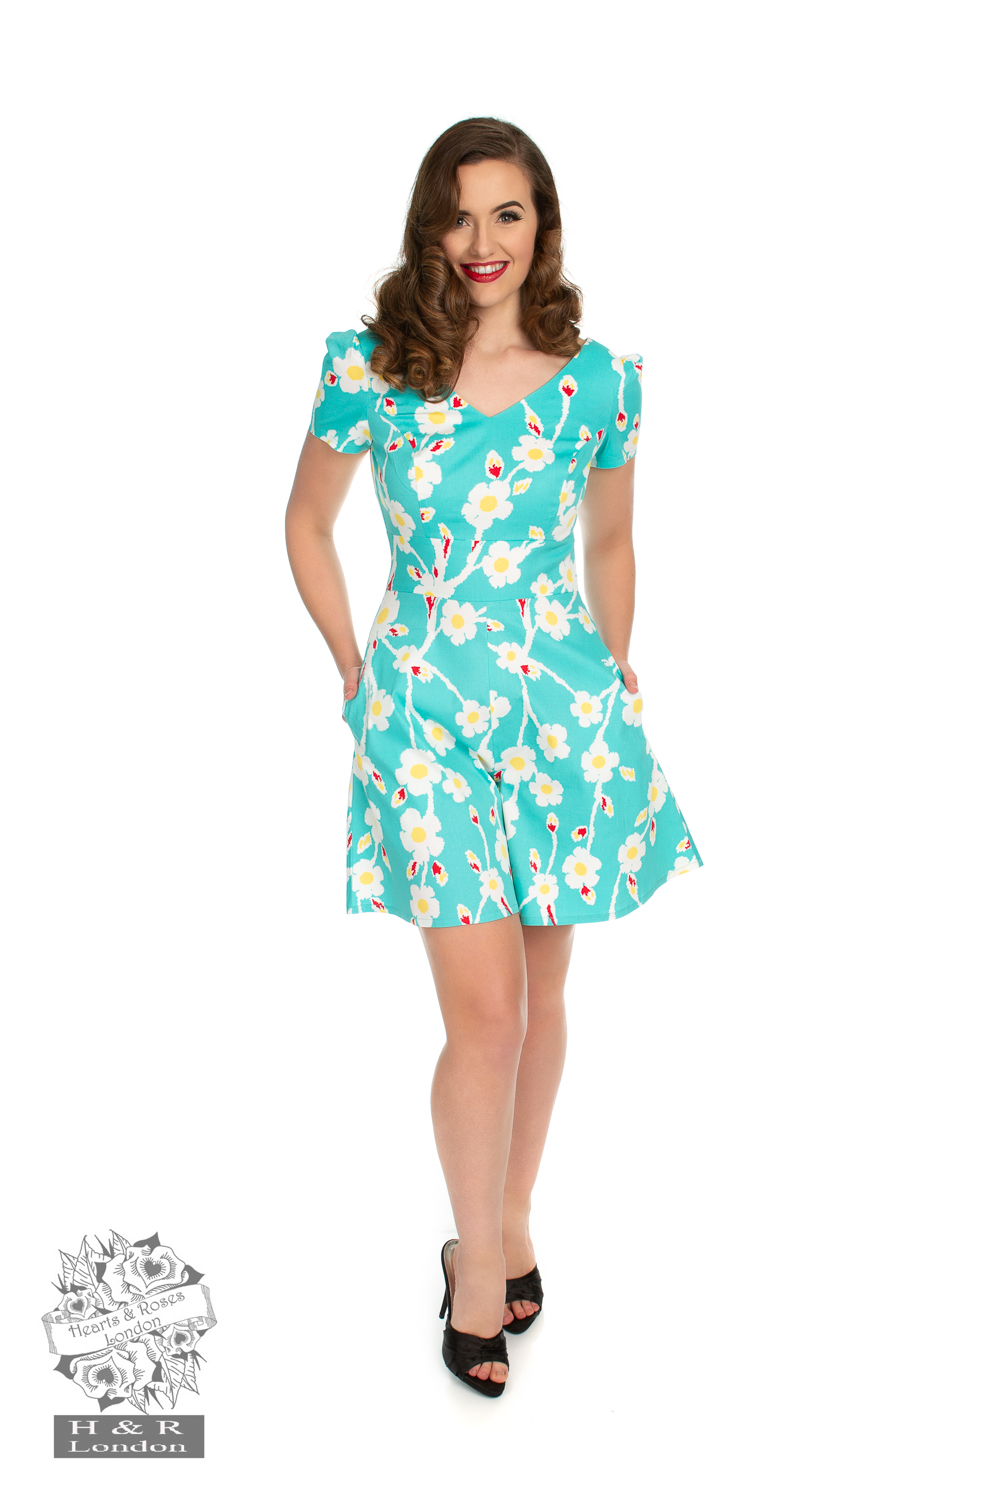 Turquoise Floral Playful Playsuit